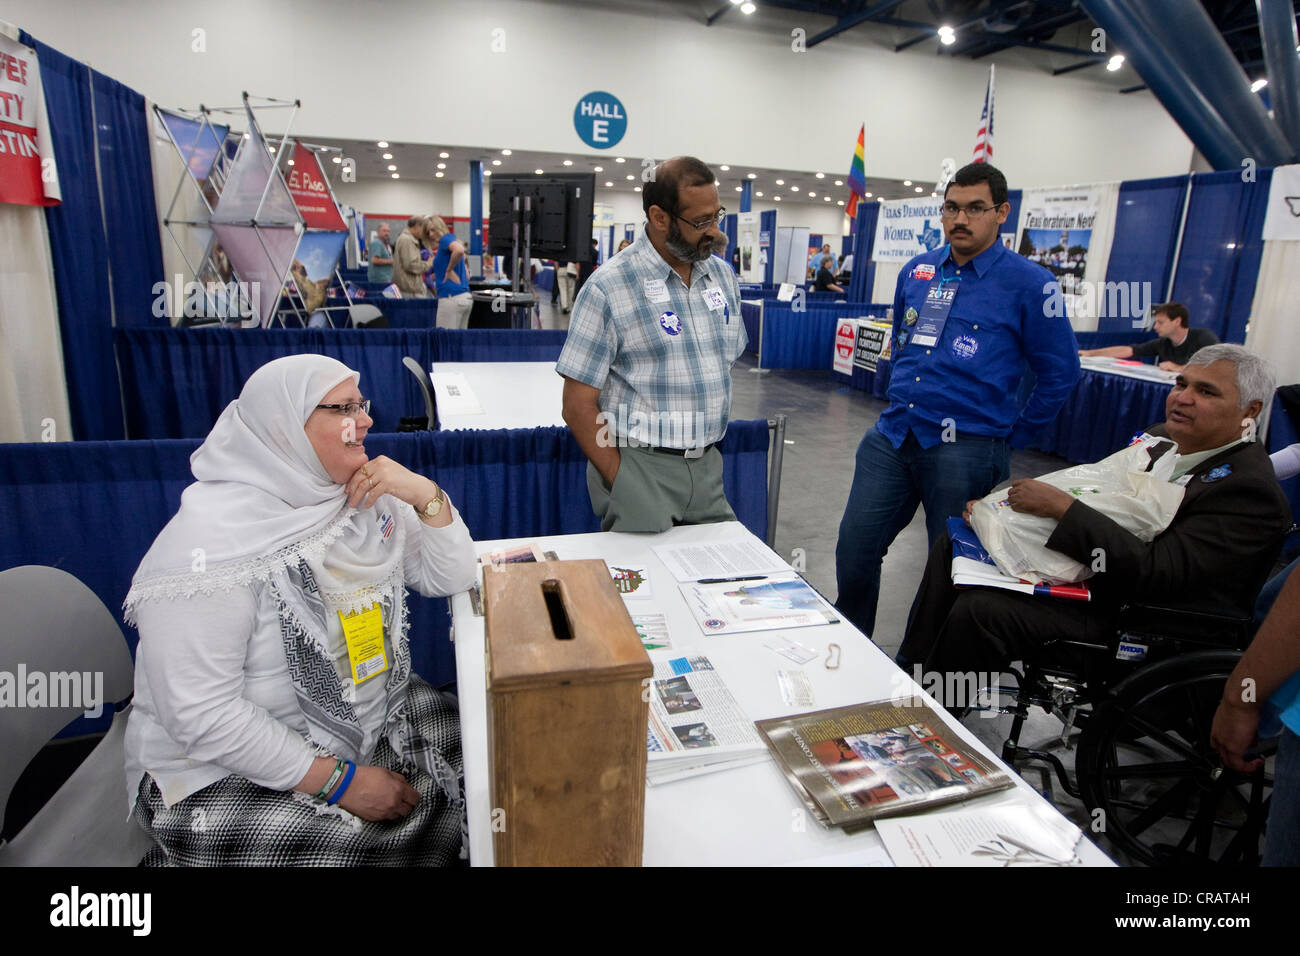 Booth at 2012 Texas Democratic State Convention trade show includes group of Muslim Democrats in Houston, Texas - Stock Image